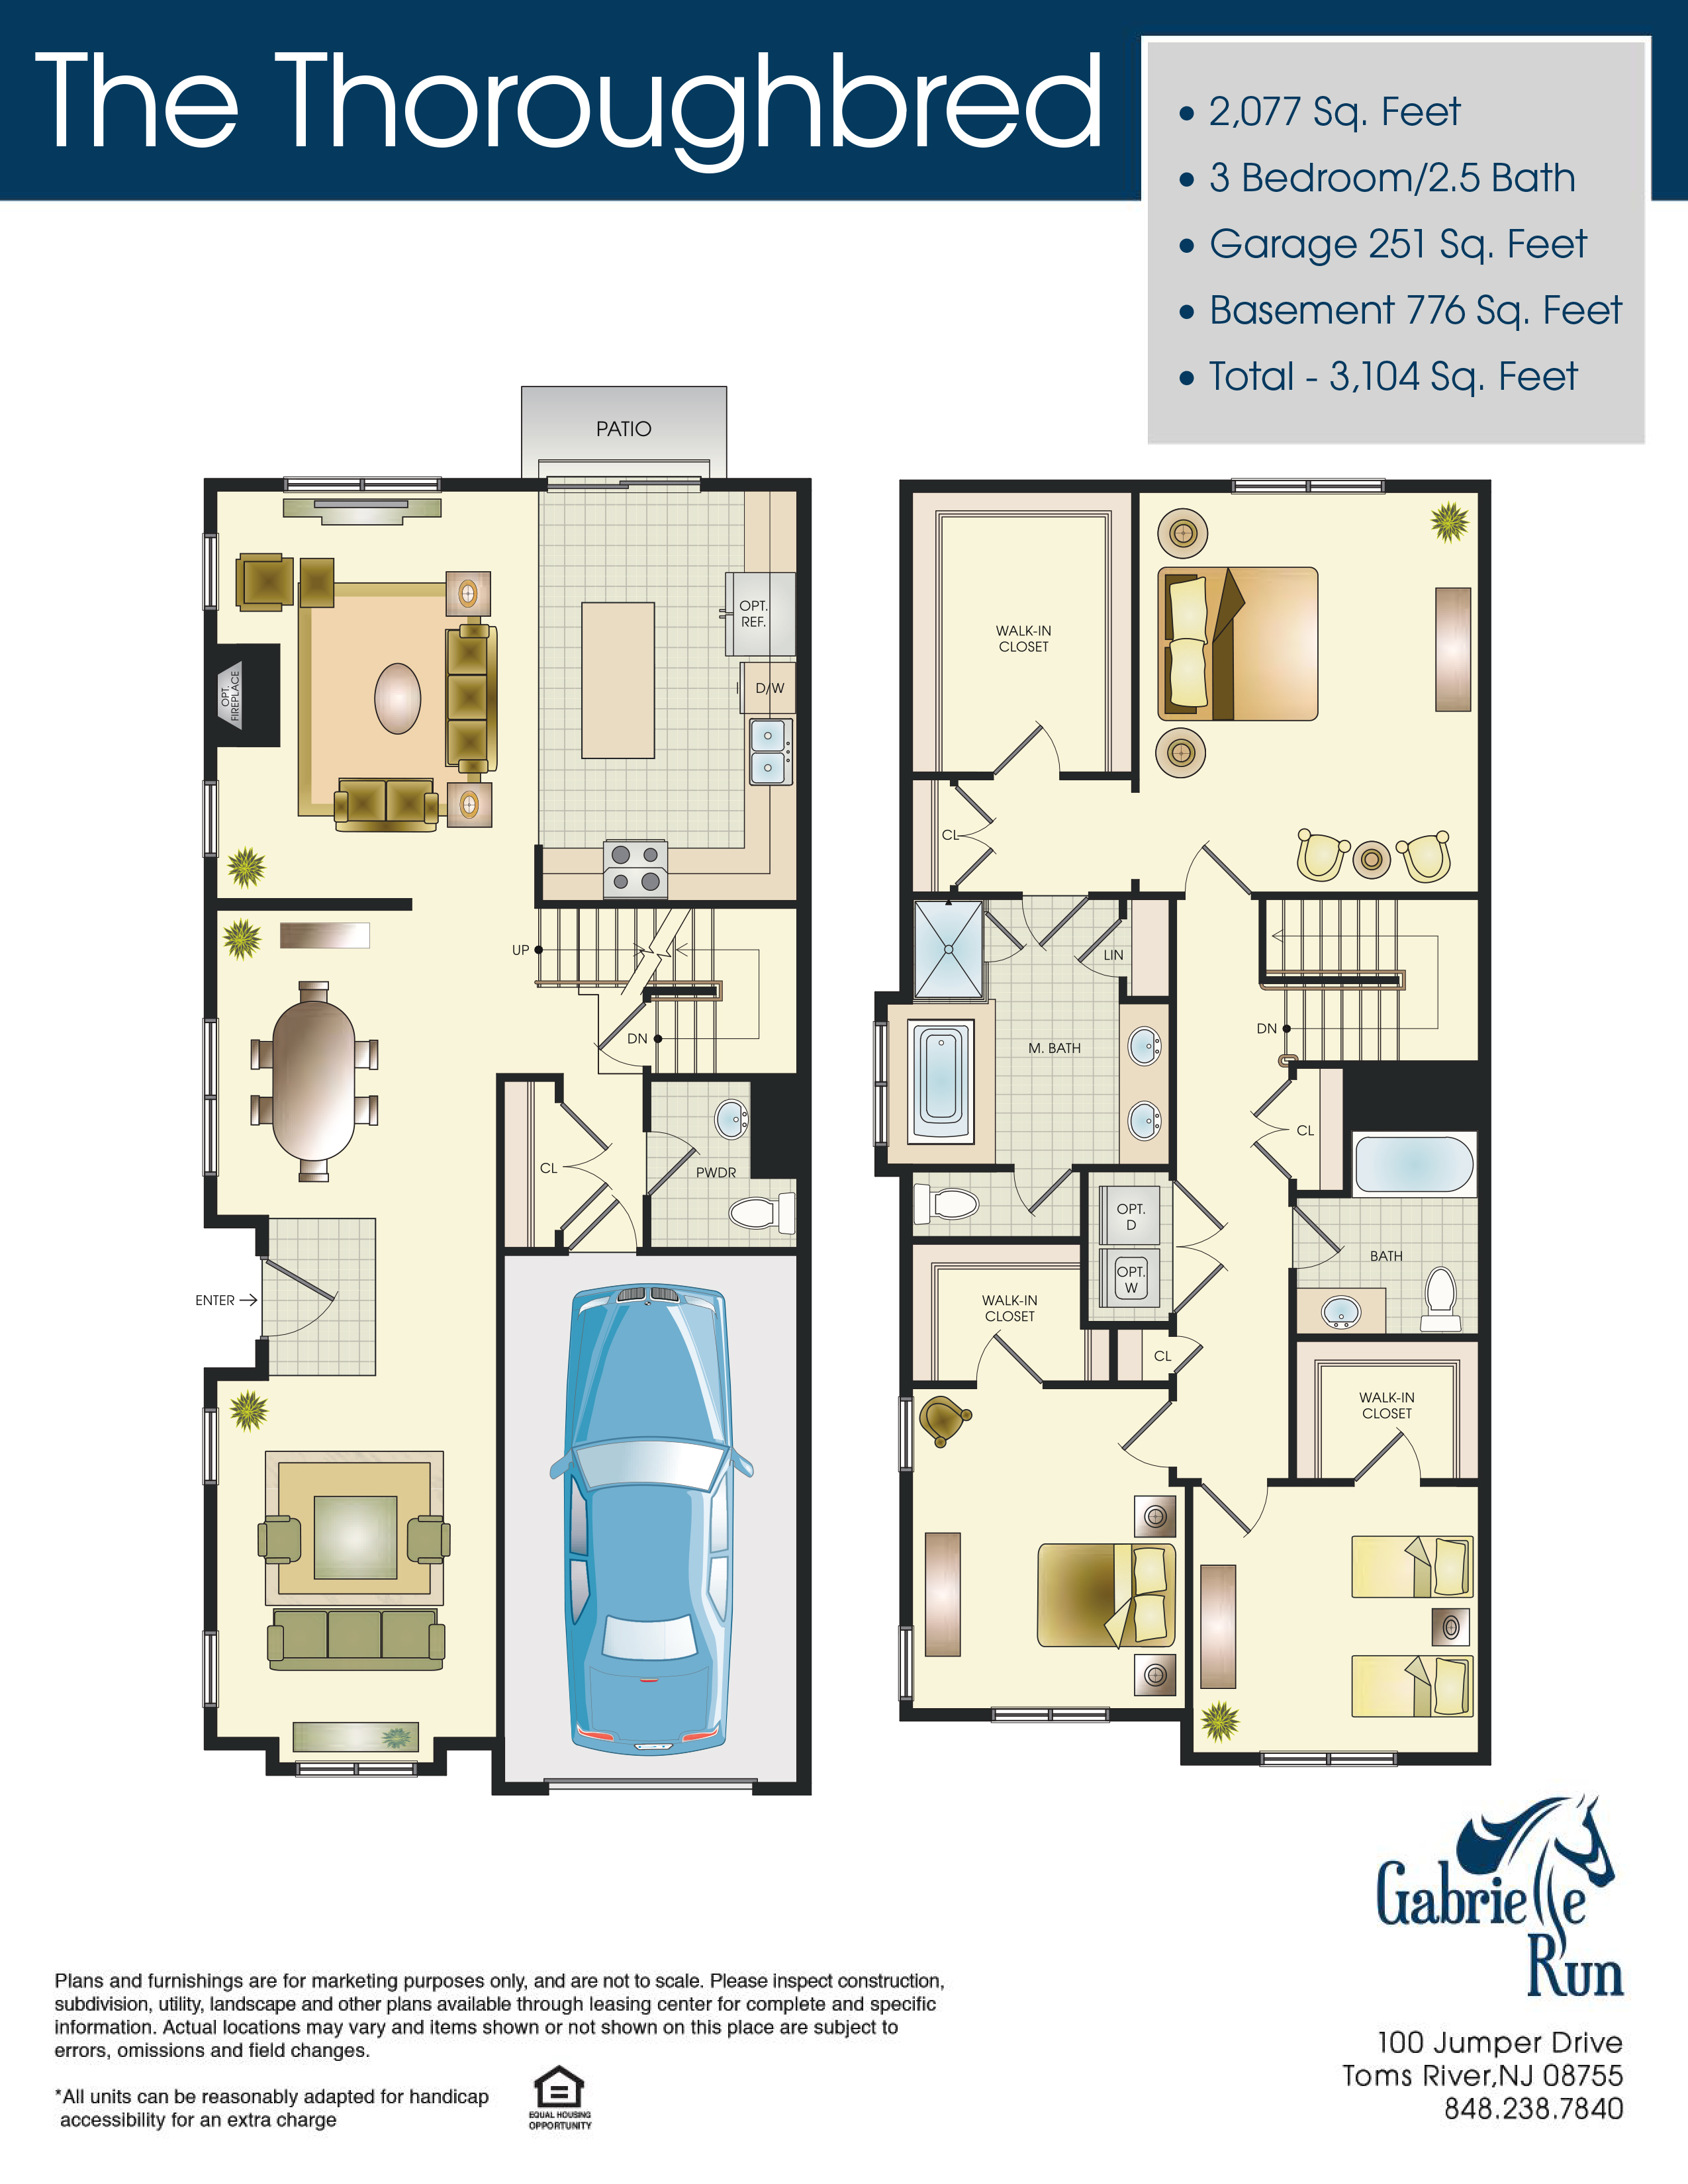 Gabrielle Run Floor Plan The Thoroughbred